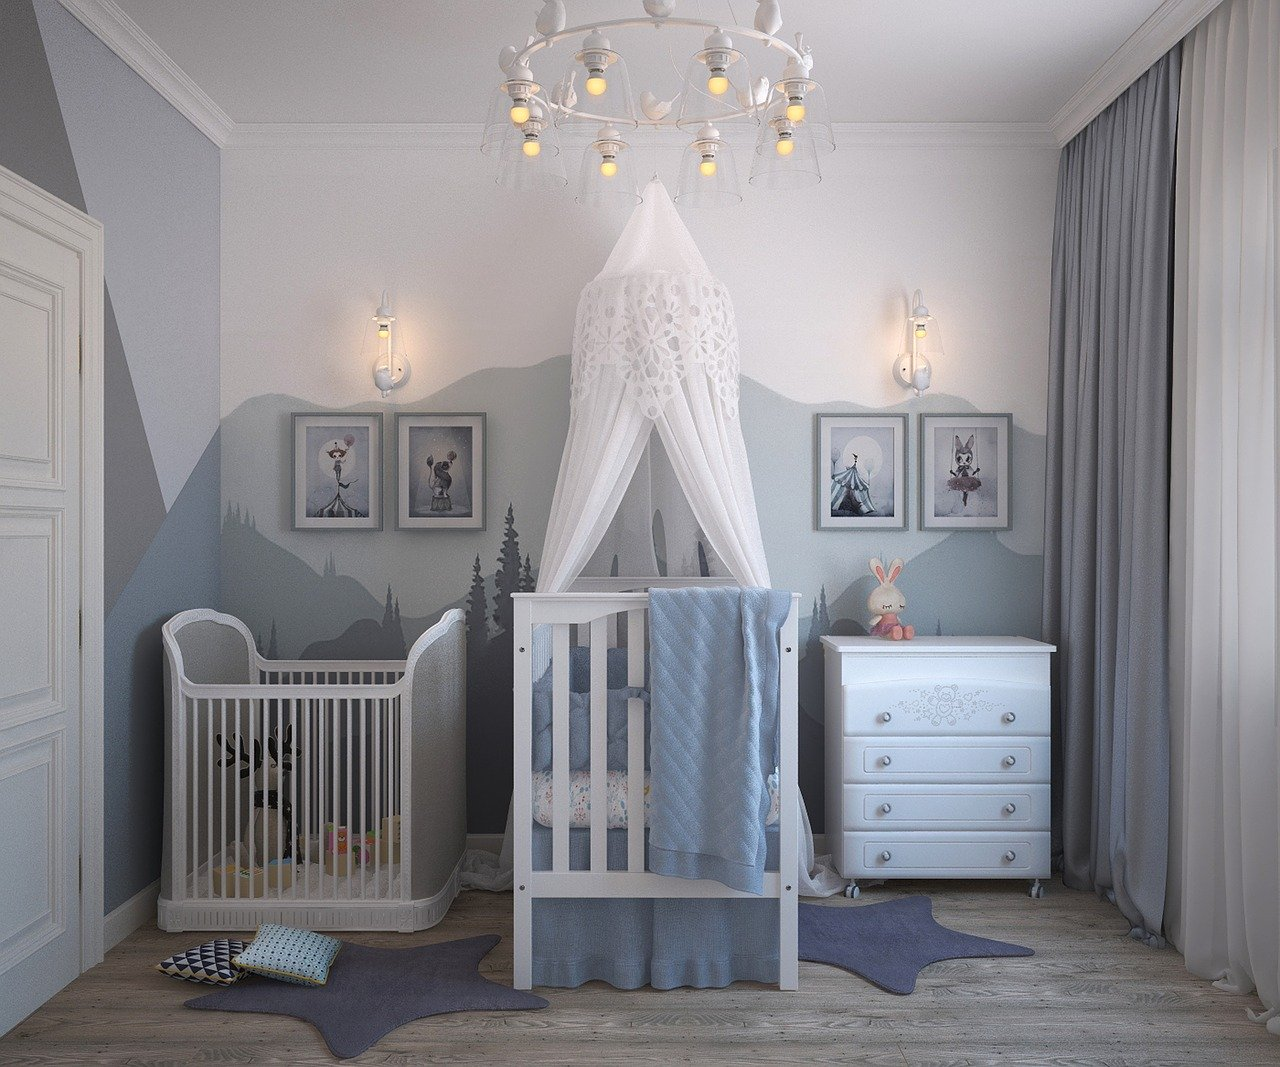 WHAT YOU HAVE TO KNOW WHEN DESIGNING A BABY ROOM